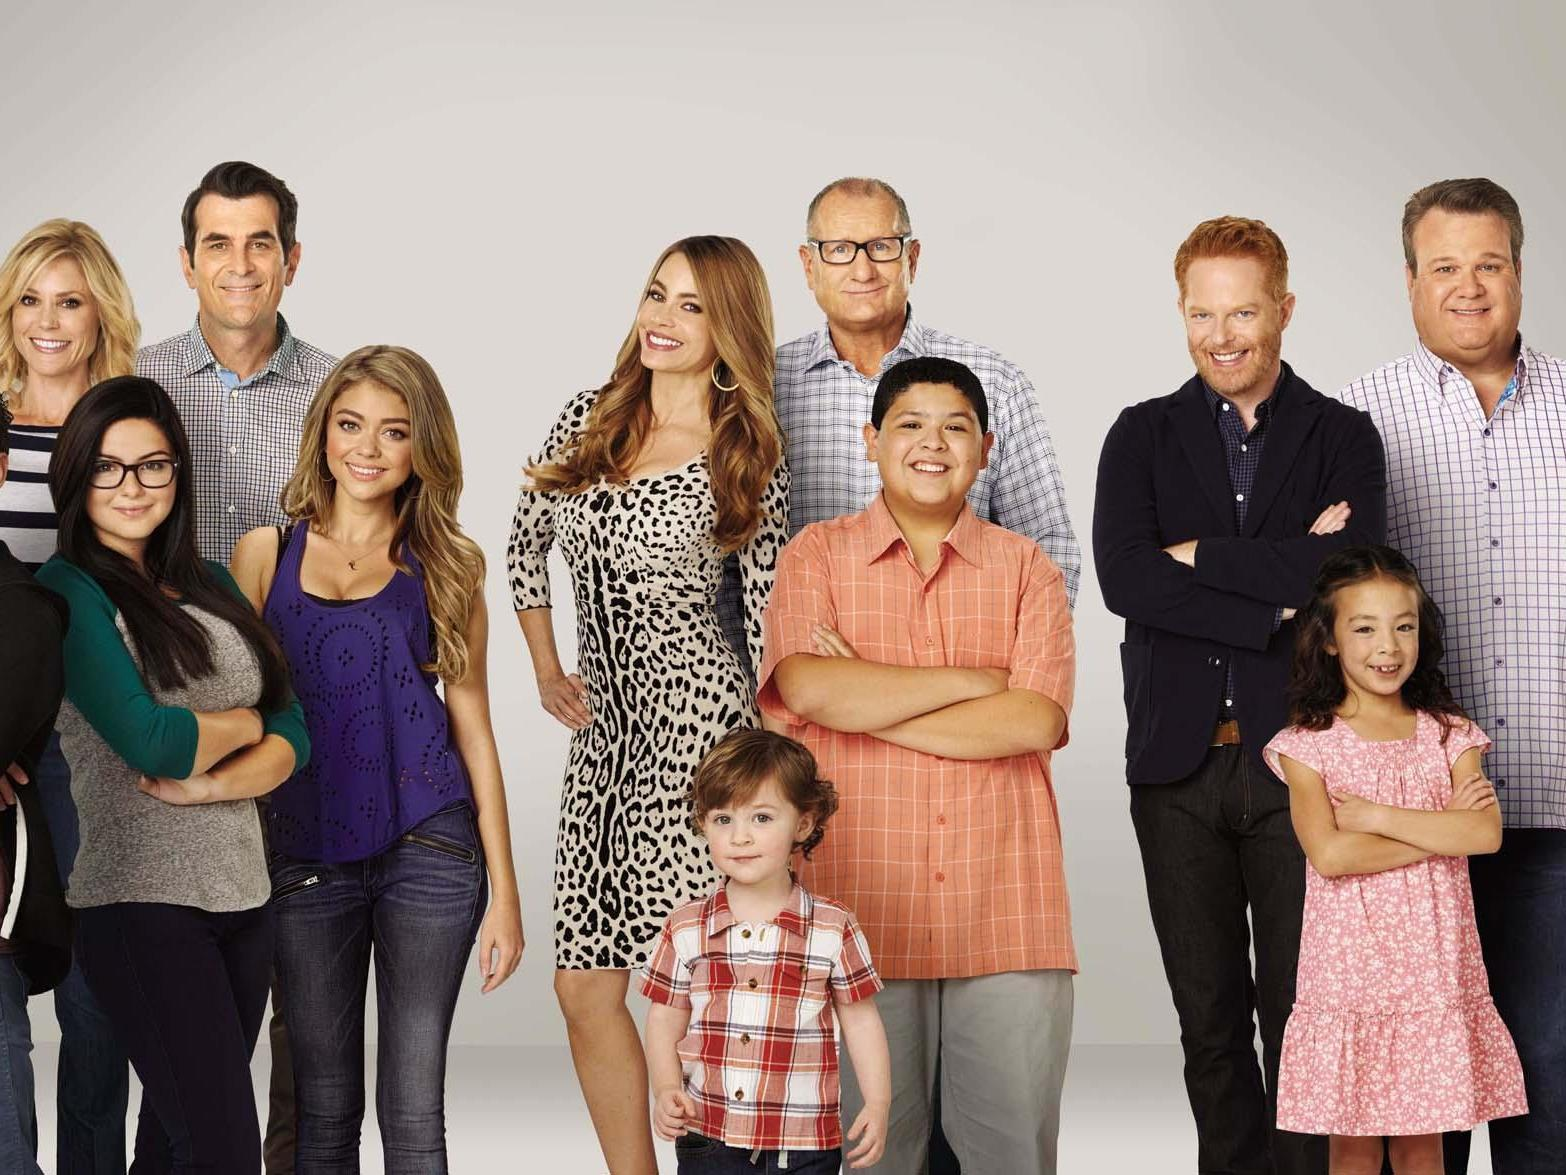 Modern Family To End After 11th Season There Are Still Some Things Our Writers Don T Yet Know About Each Other S Sex Lives The Independent The Independent